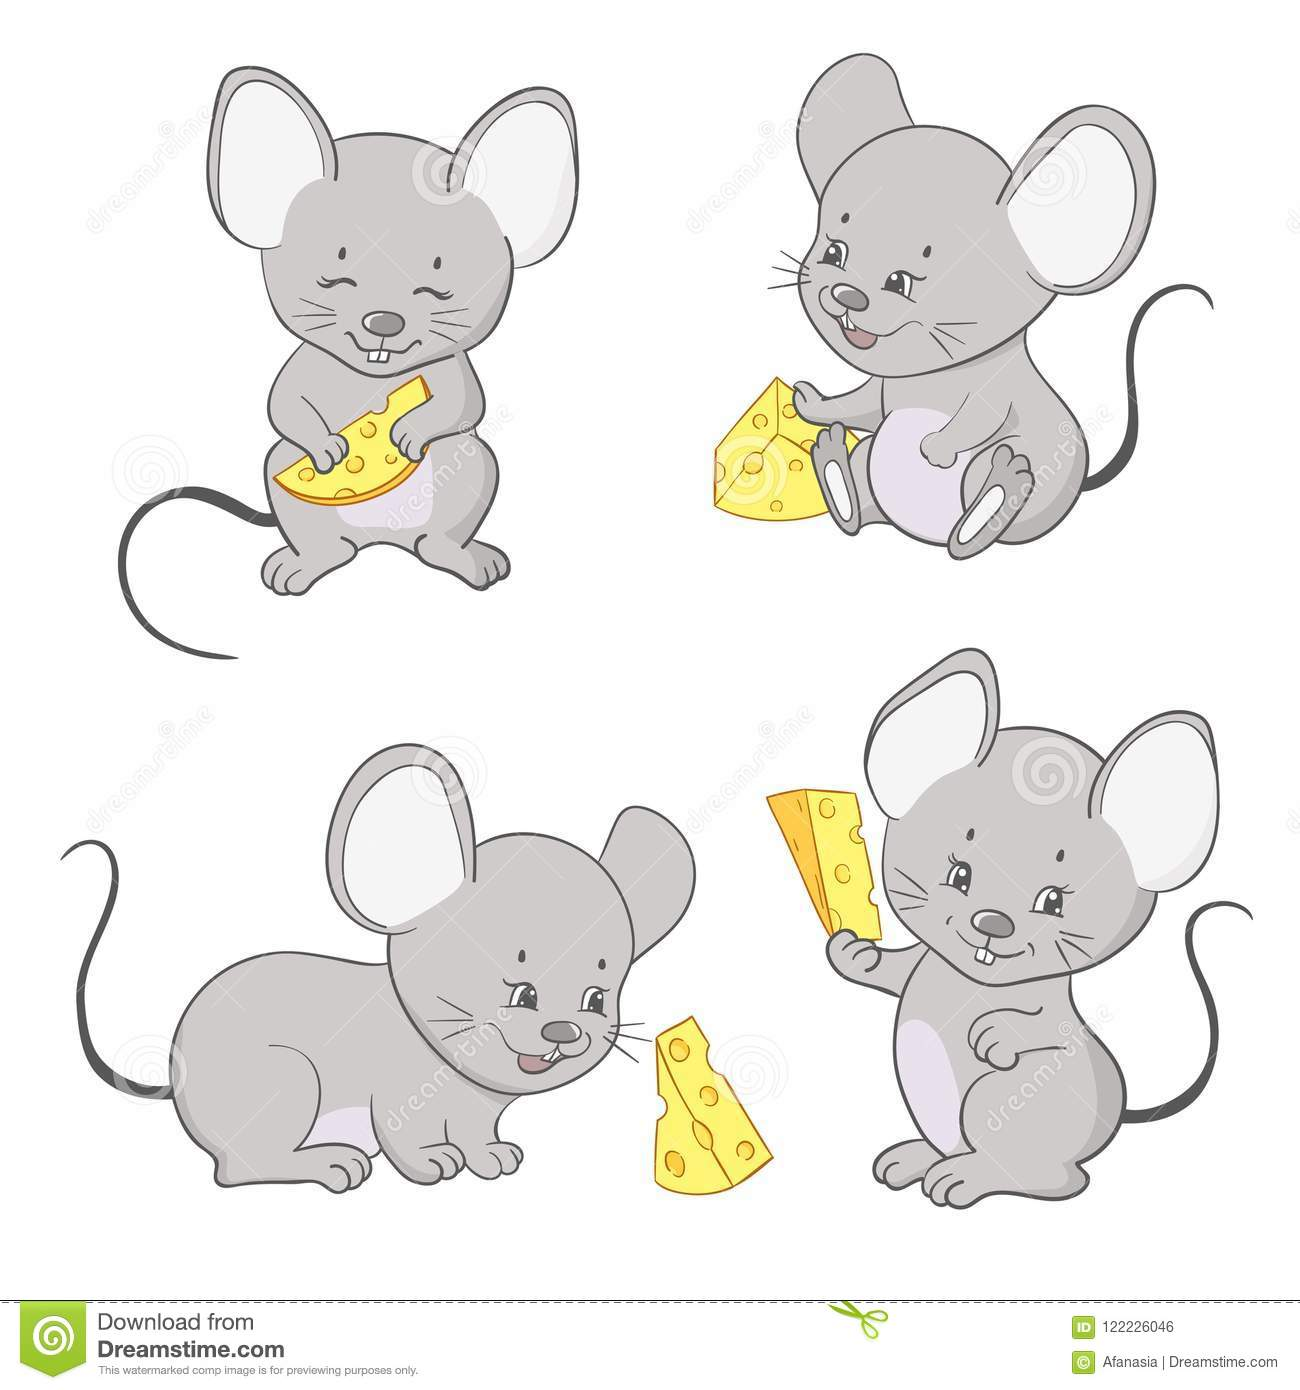 Why does a little mouse dream